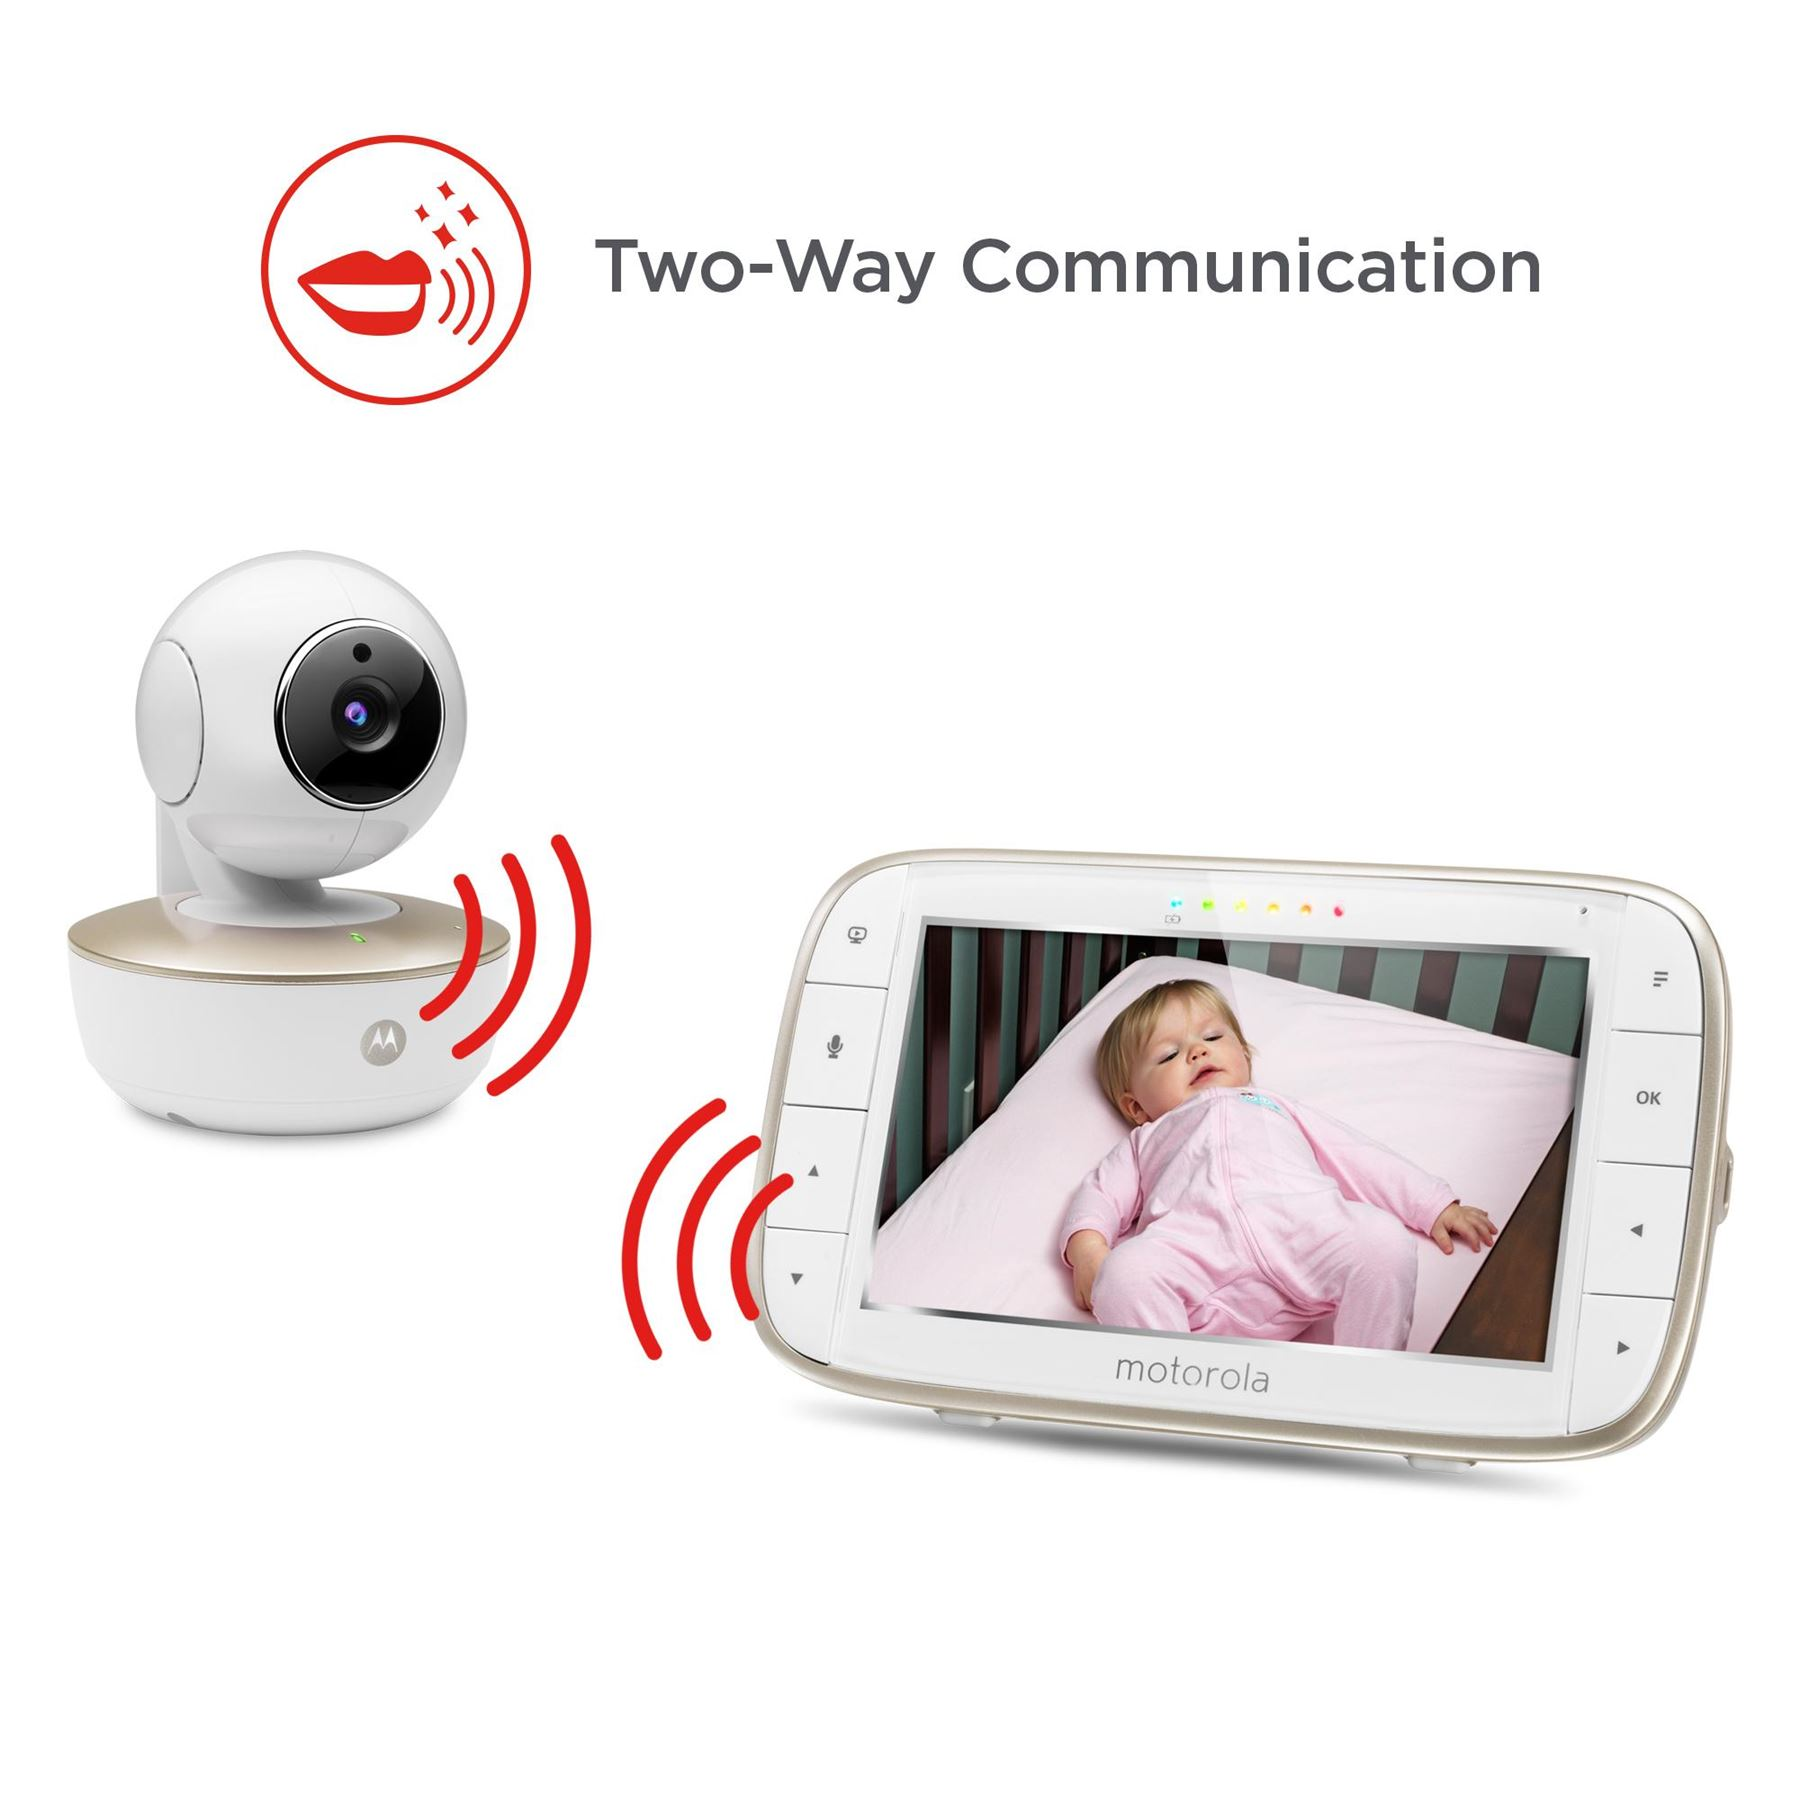 motorola video baby monitor. motorola mbp855 connect video baby monitor with portable wi-fi remote access camera, 5 inch